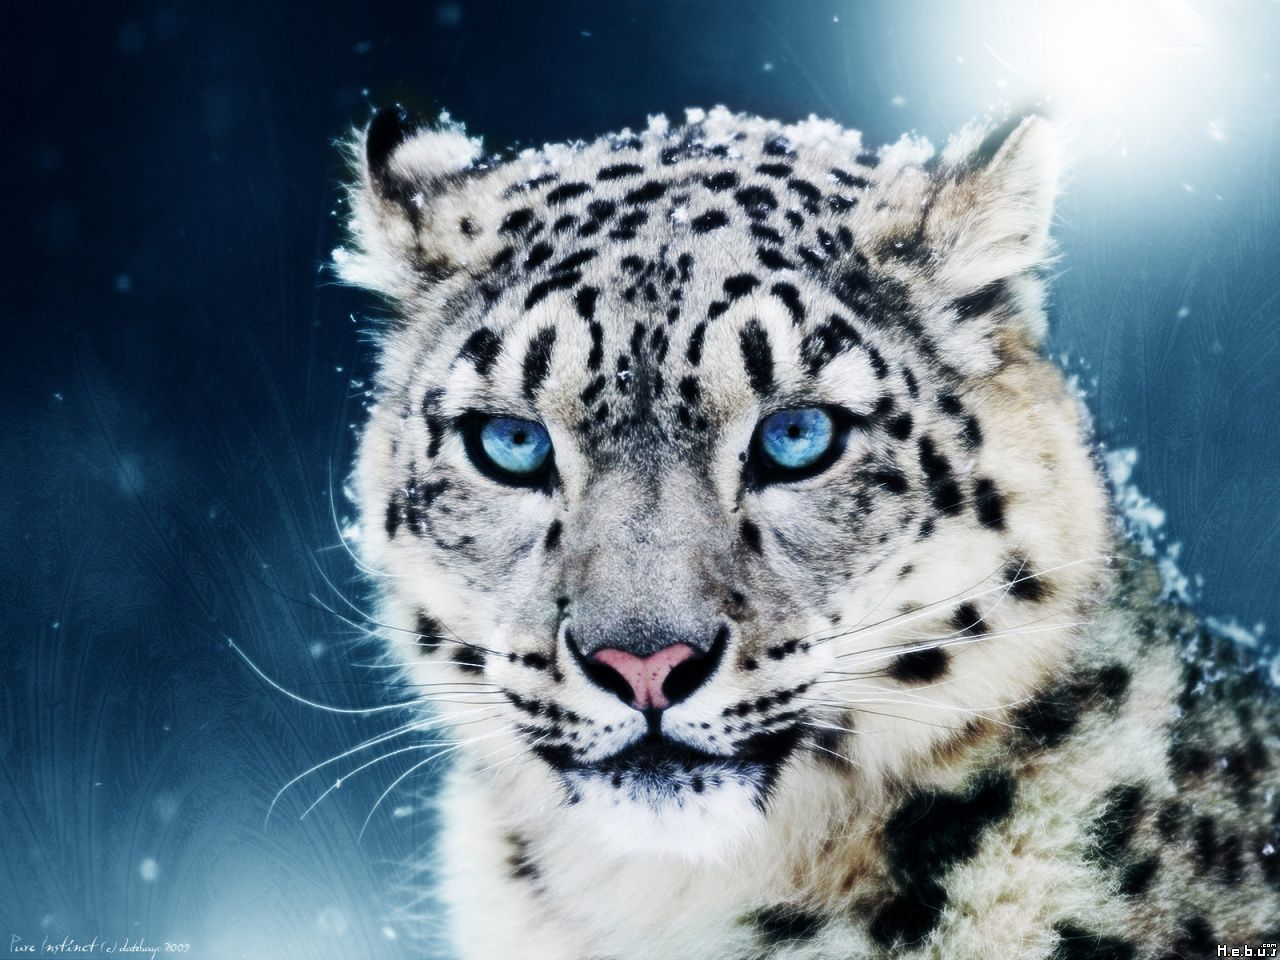 Pics Of White Tigers With Blue Eyes Download Texture White Tiger With Blue Eyes Photo Wallpapers Leopard Pictures Snow Leopard Wallpaper Animals Beautiful